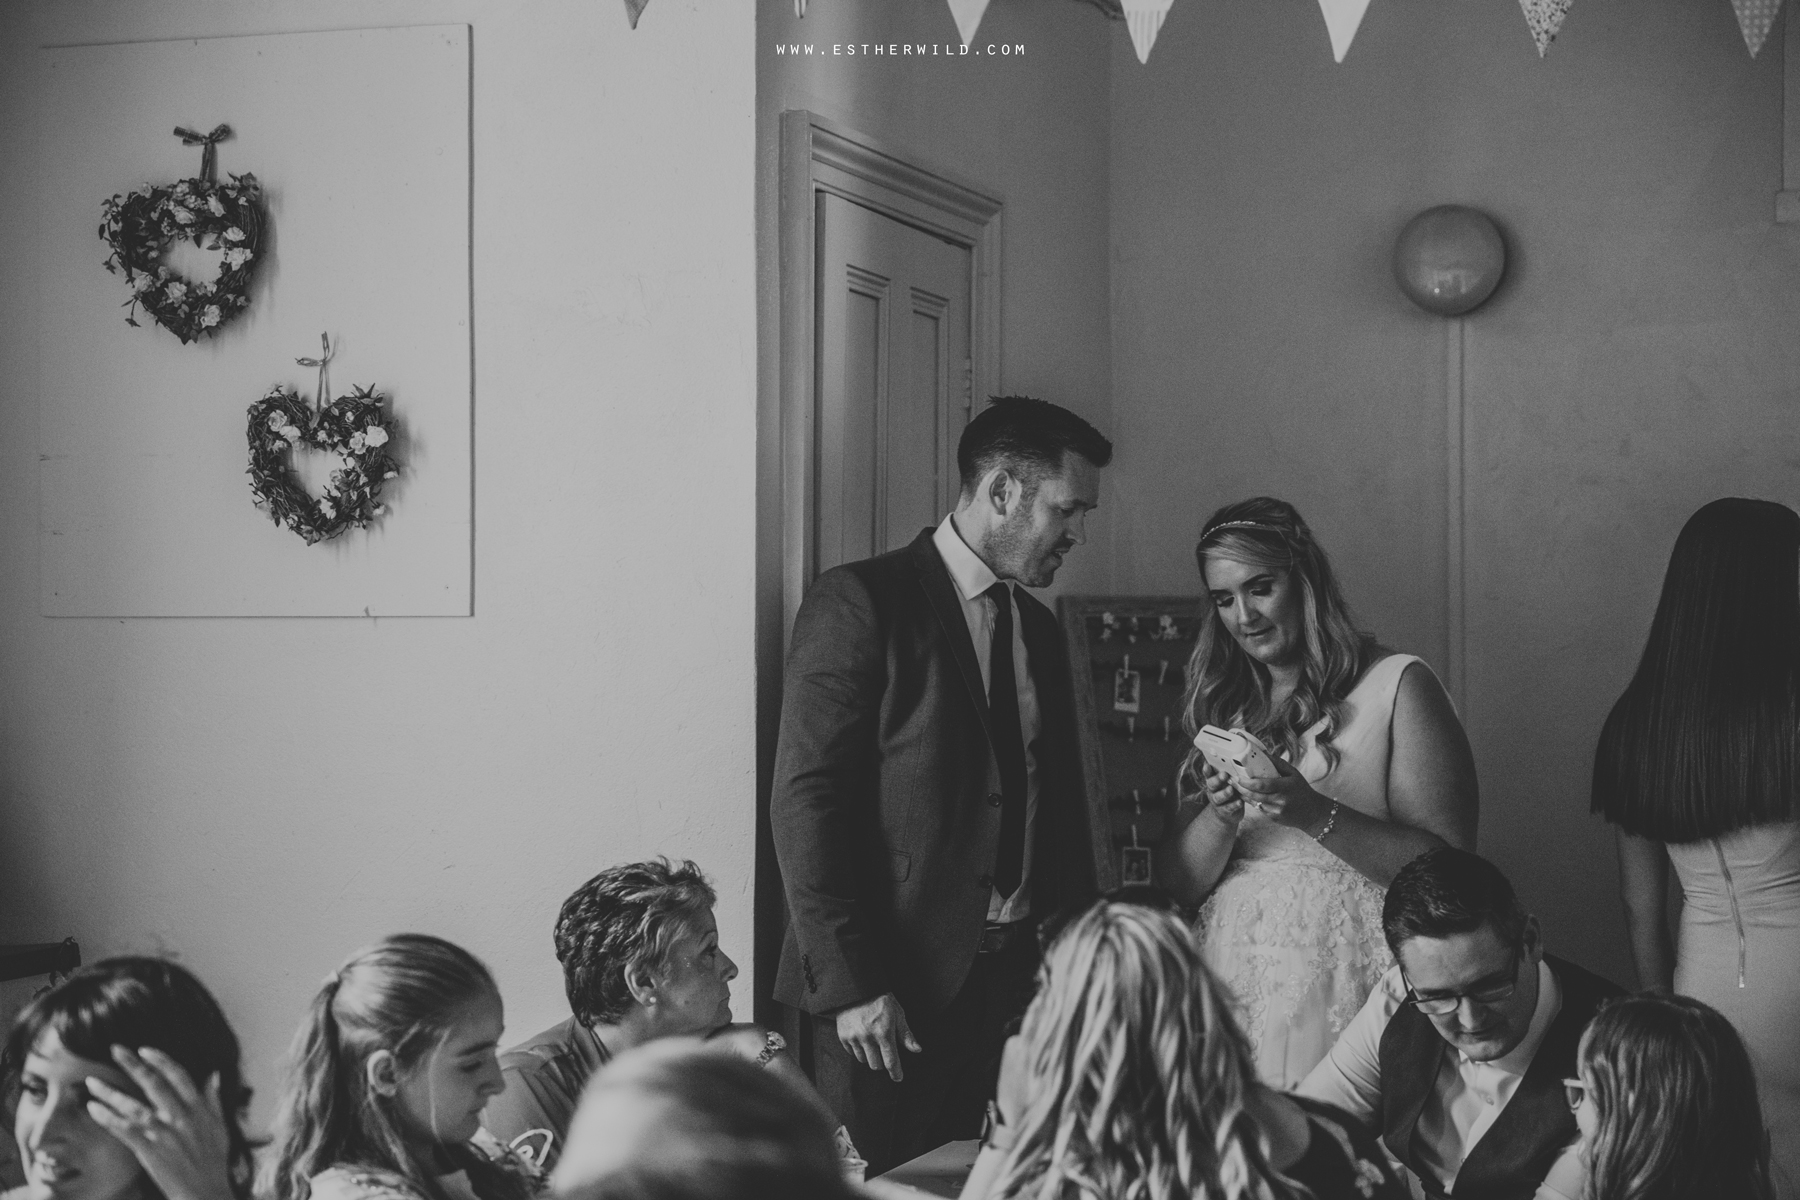 Swaffham_Wedding_Castle_Acre_Norfolk_Esther_Wild_Photographer_Wedding_Photography_3R8A2187.jpg